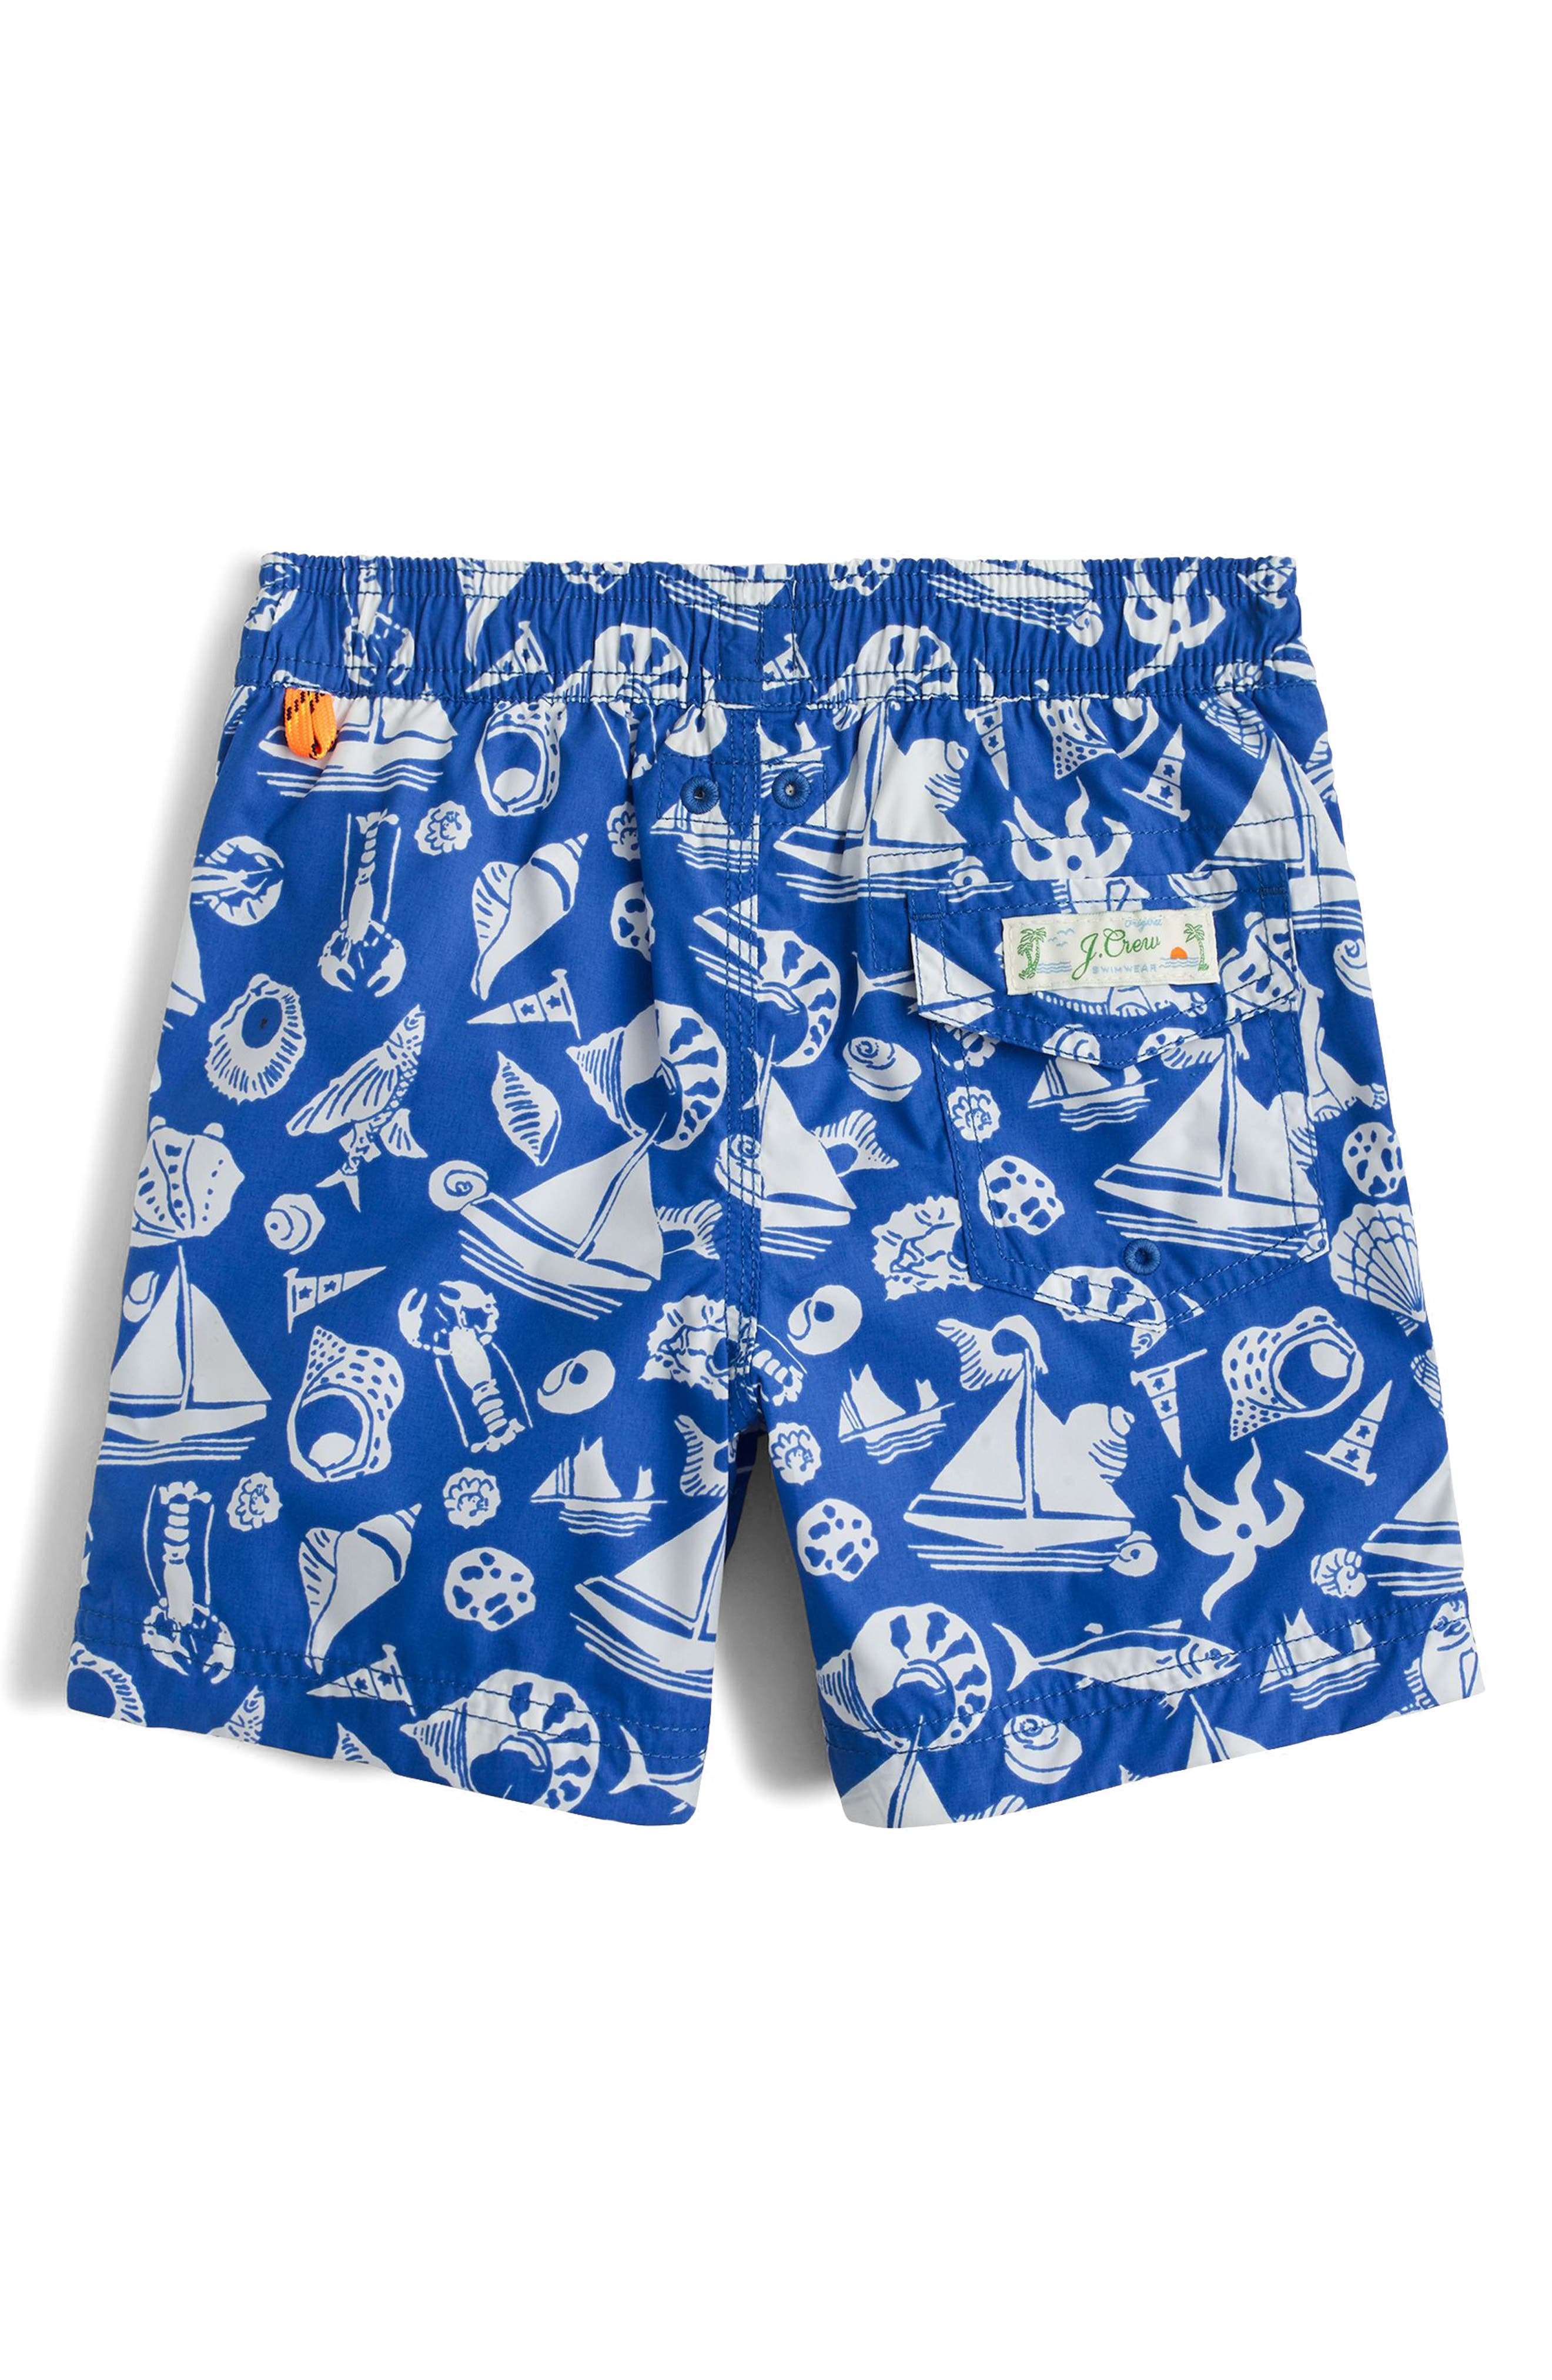 Seaside Life Swim Trunks,                             Alternate thumbnail 2, color,                             Royal Bay